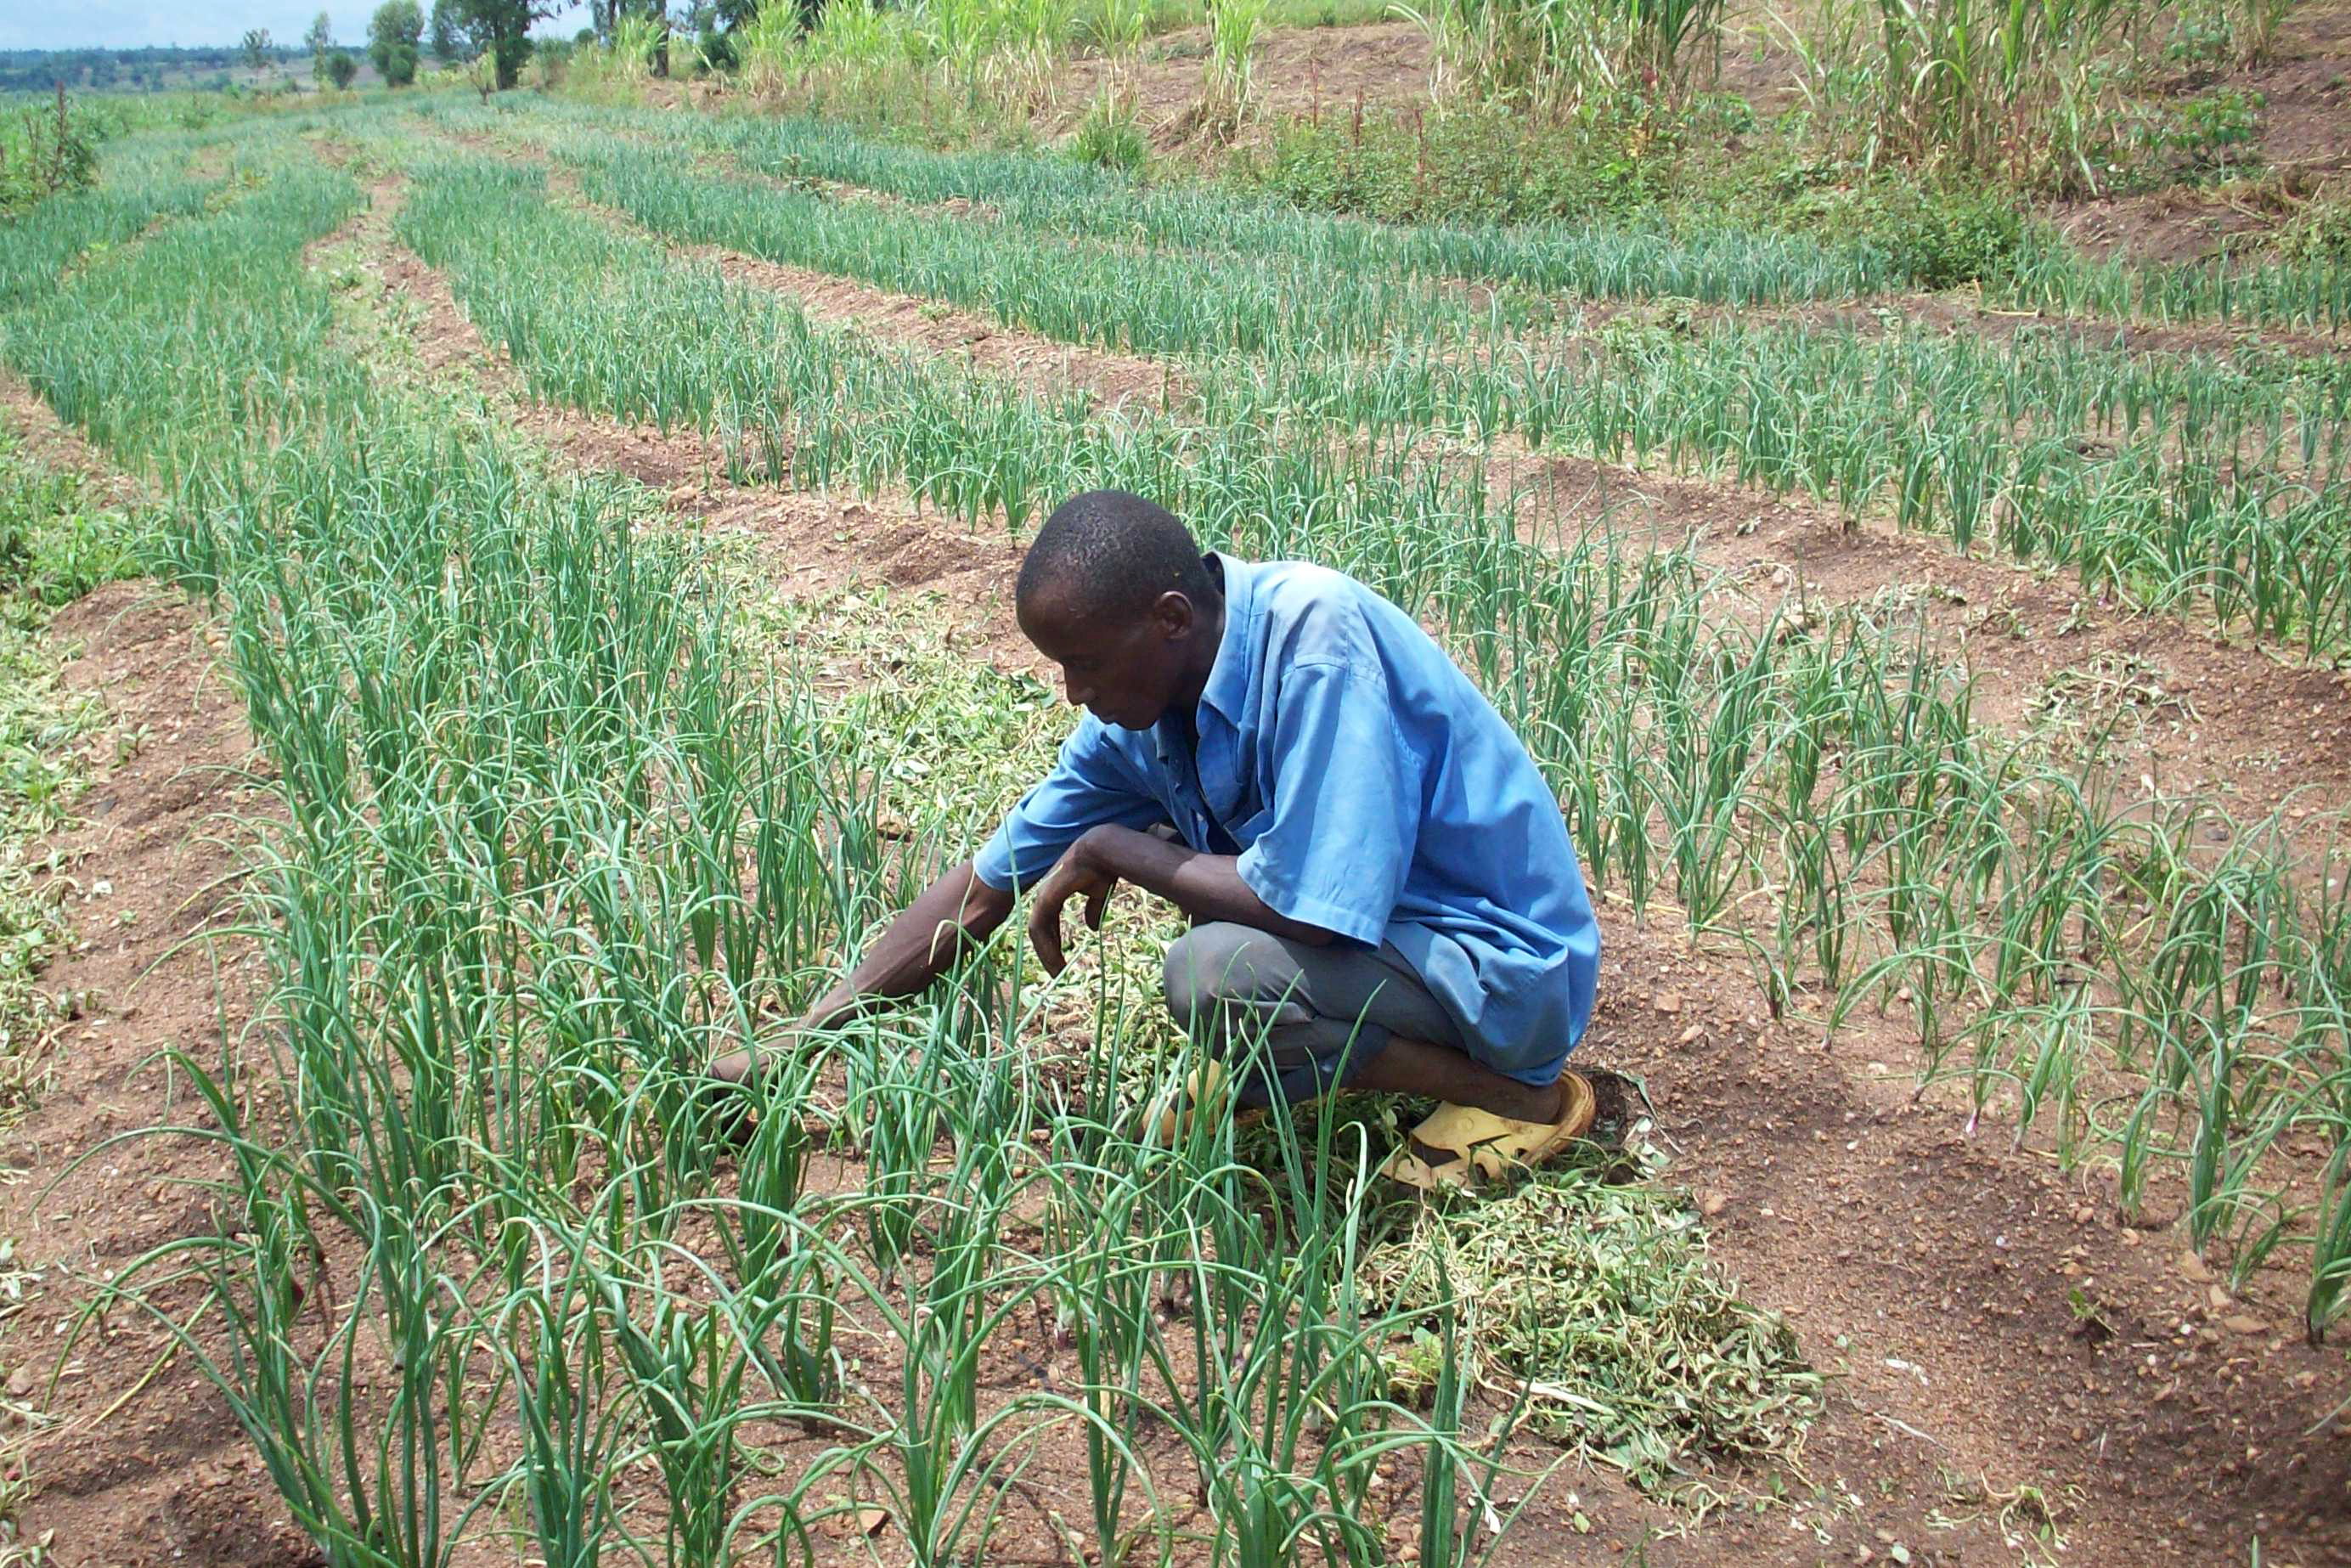 In response to failed harvests resulting from low rainfall, farmers in Burundi's Kirundo province have been diversifying their crops – growing onions like these, for example – and planting on the shores of lakes